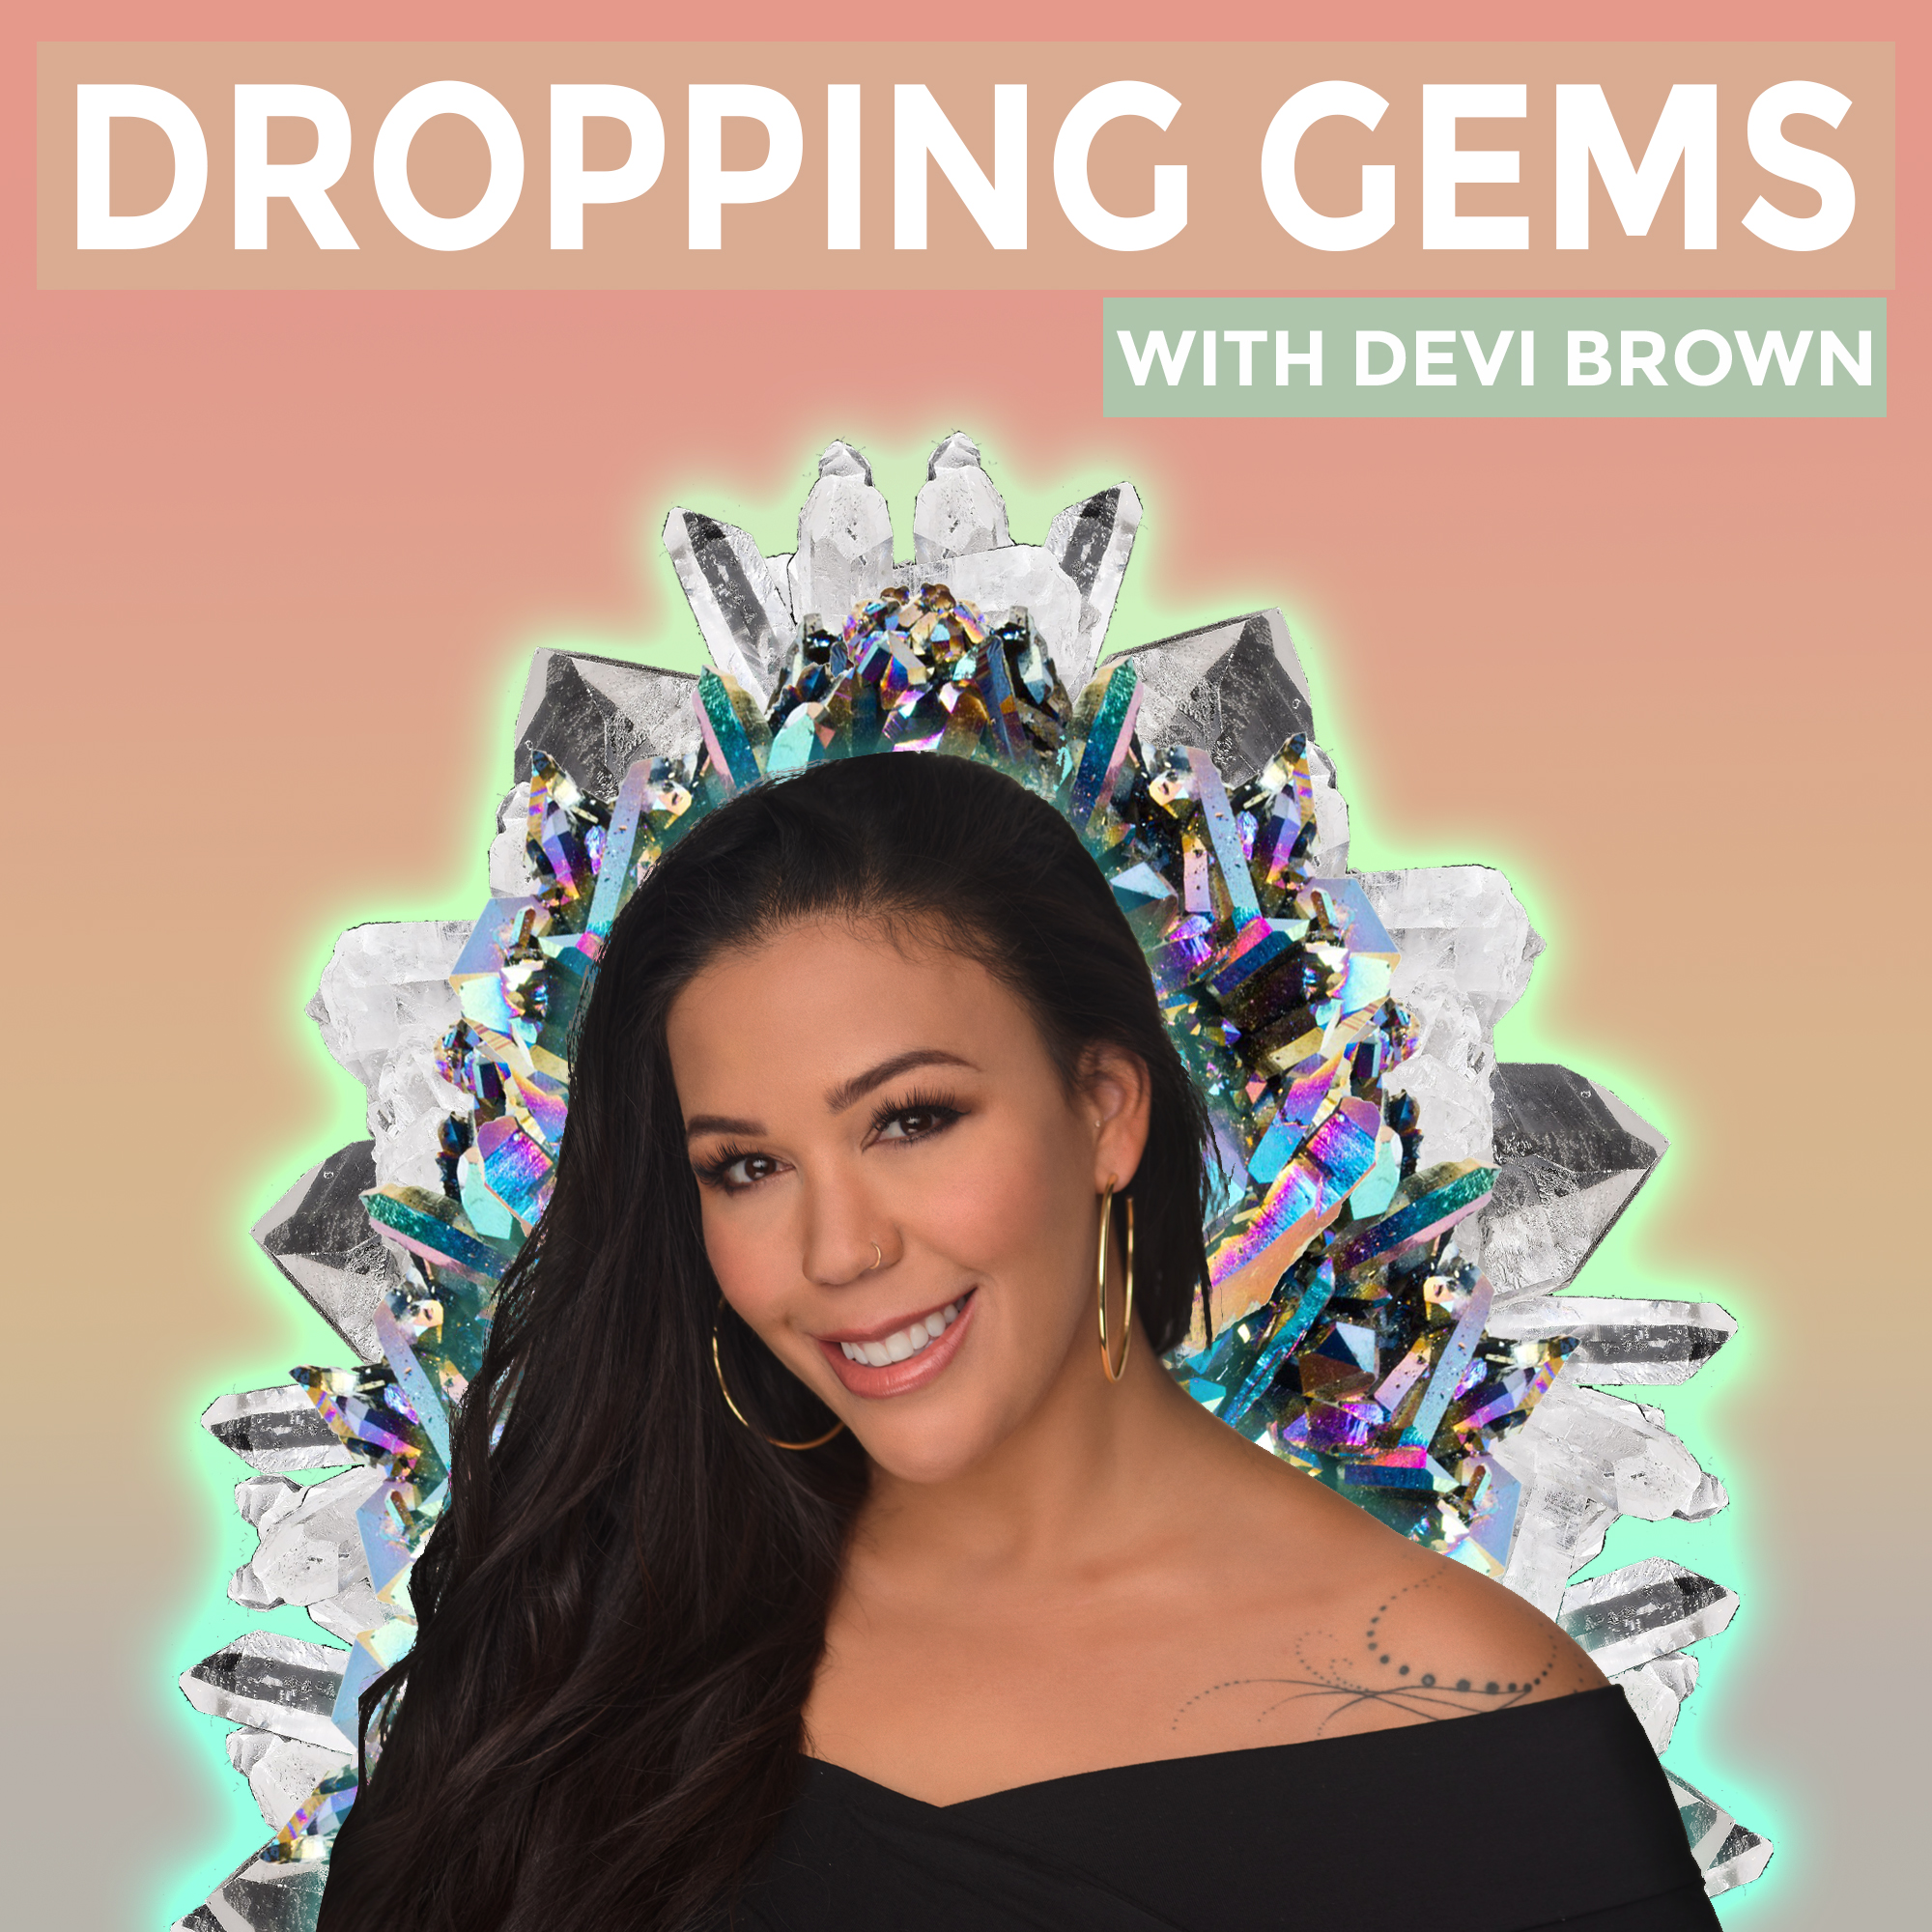 The dropping gems podcast